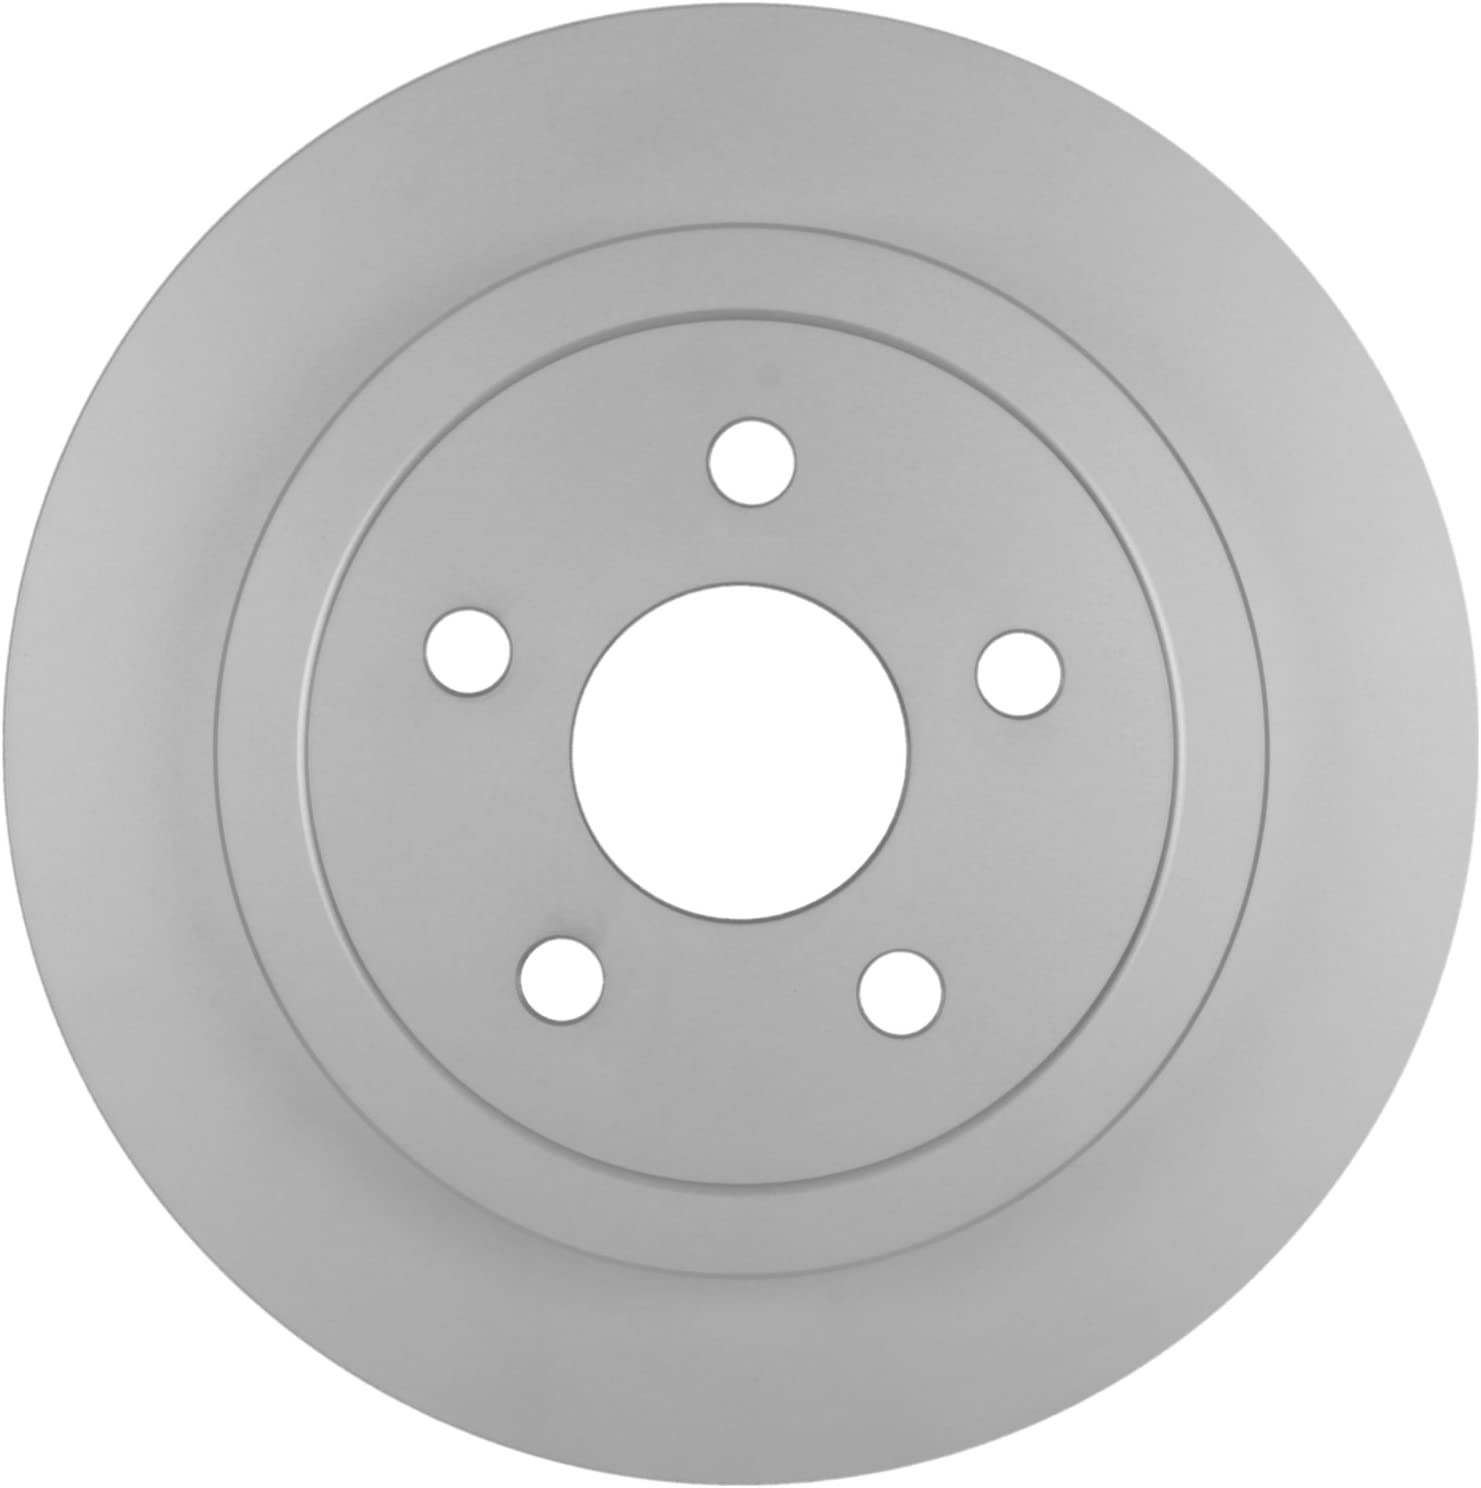 Bosch 16010158 sold favorite out QuietCast Premium Disc Brake For Chrysler: Rotor